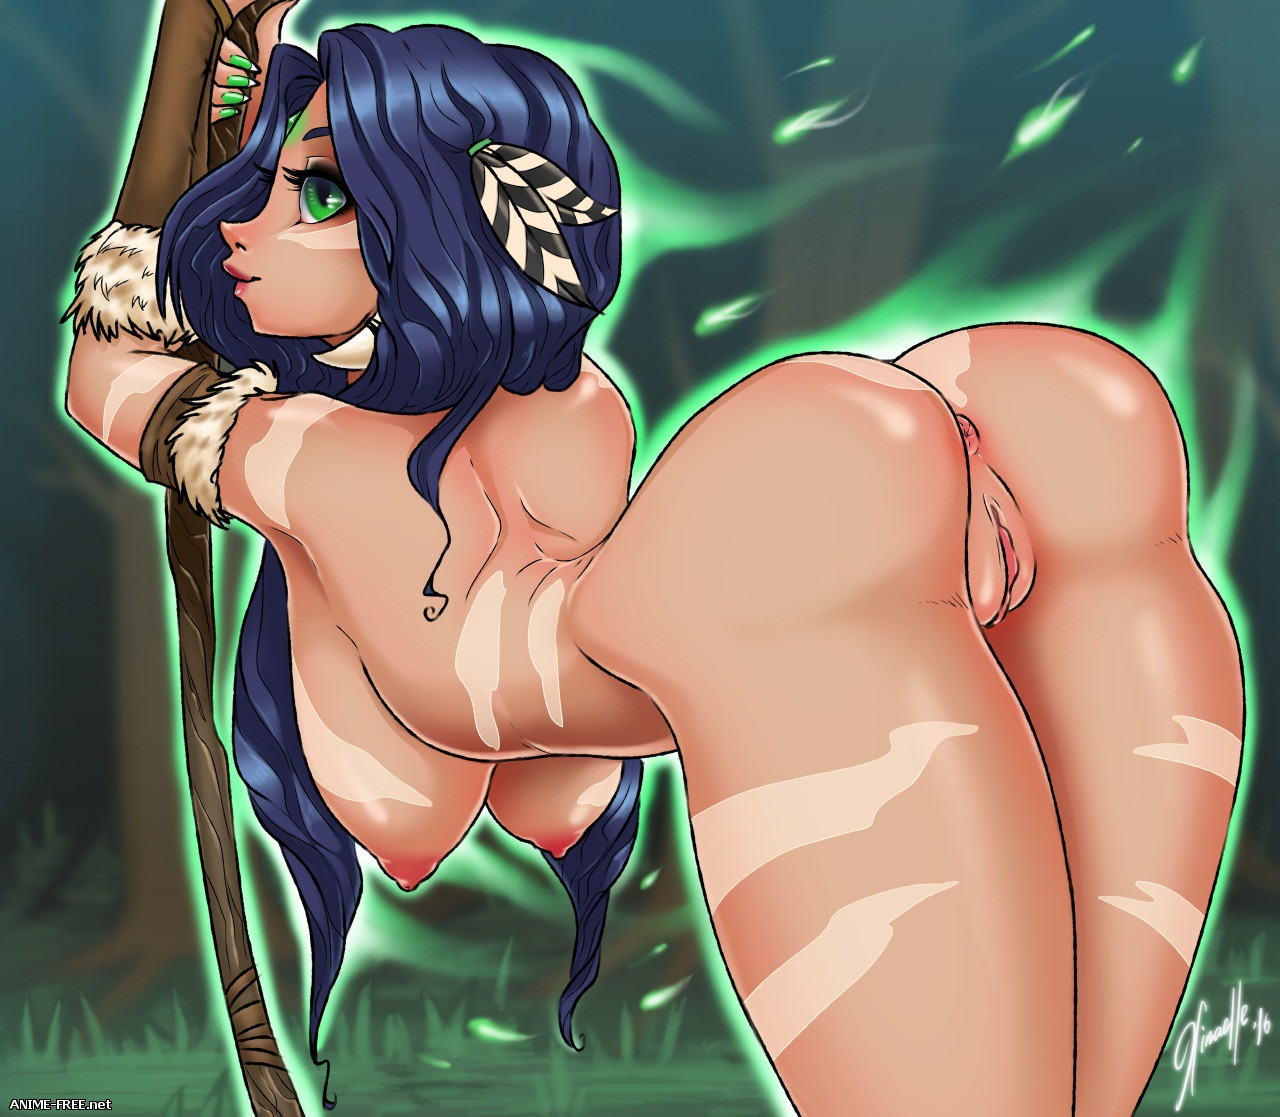 Xinaelle (Artwork Collection) [Uncen] [JPG,PNG] Hentai ART